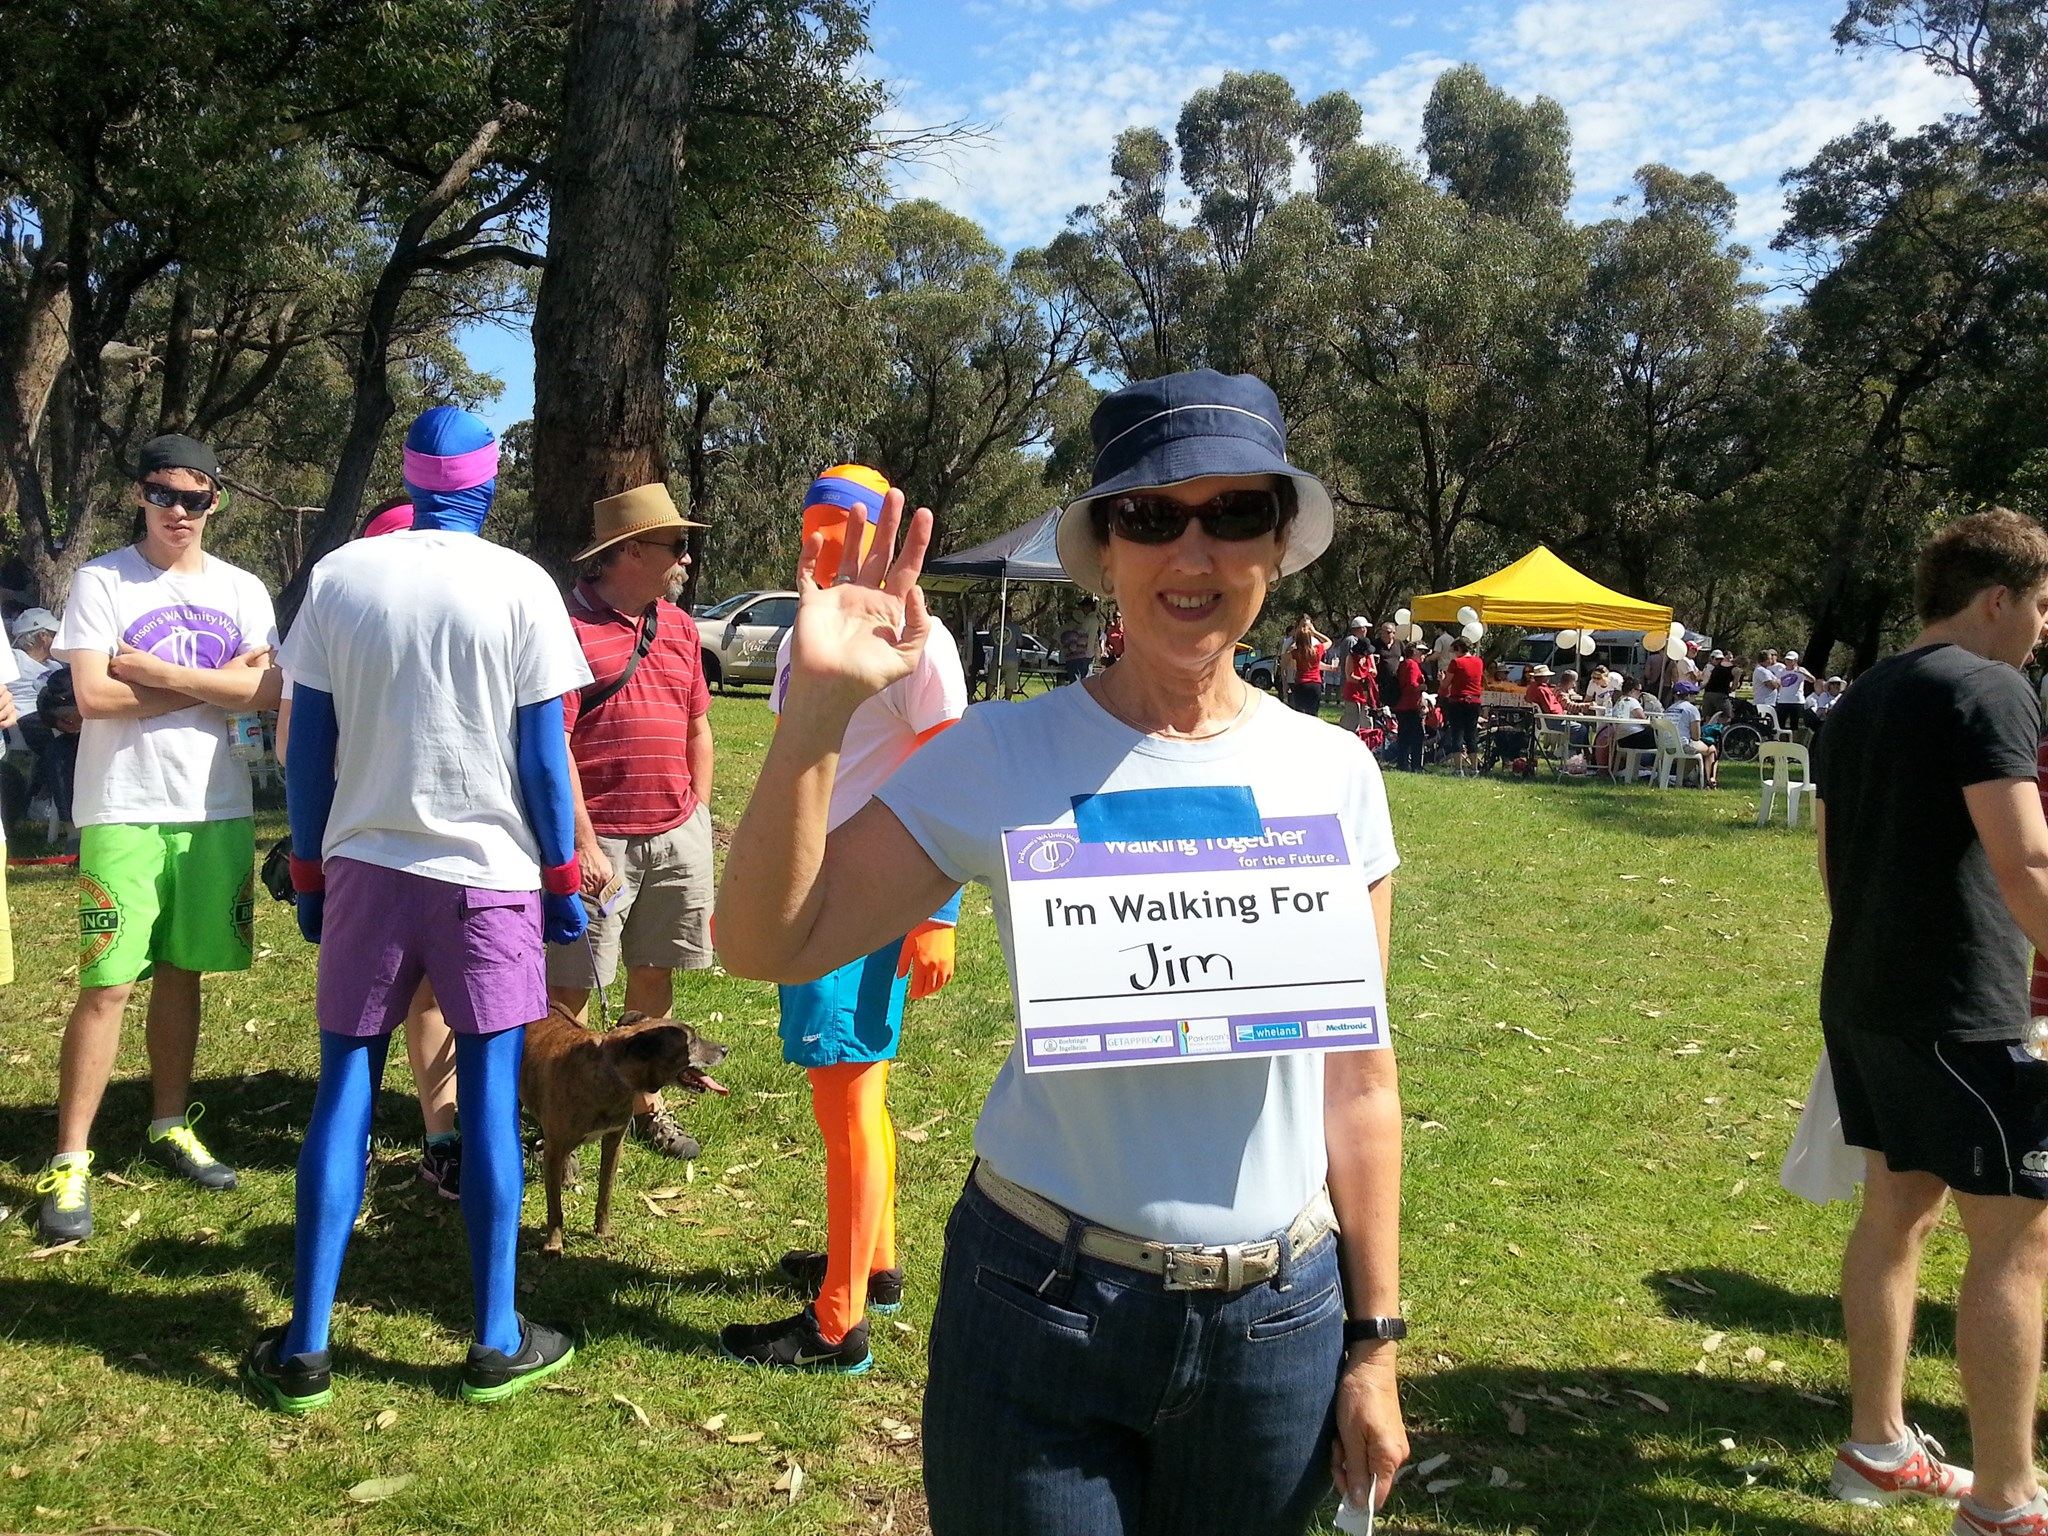 Cousin Mary fundraising for a cure, in Jim's name - 2013 W. Australia Parkinson's Unity Walk.